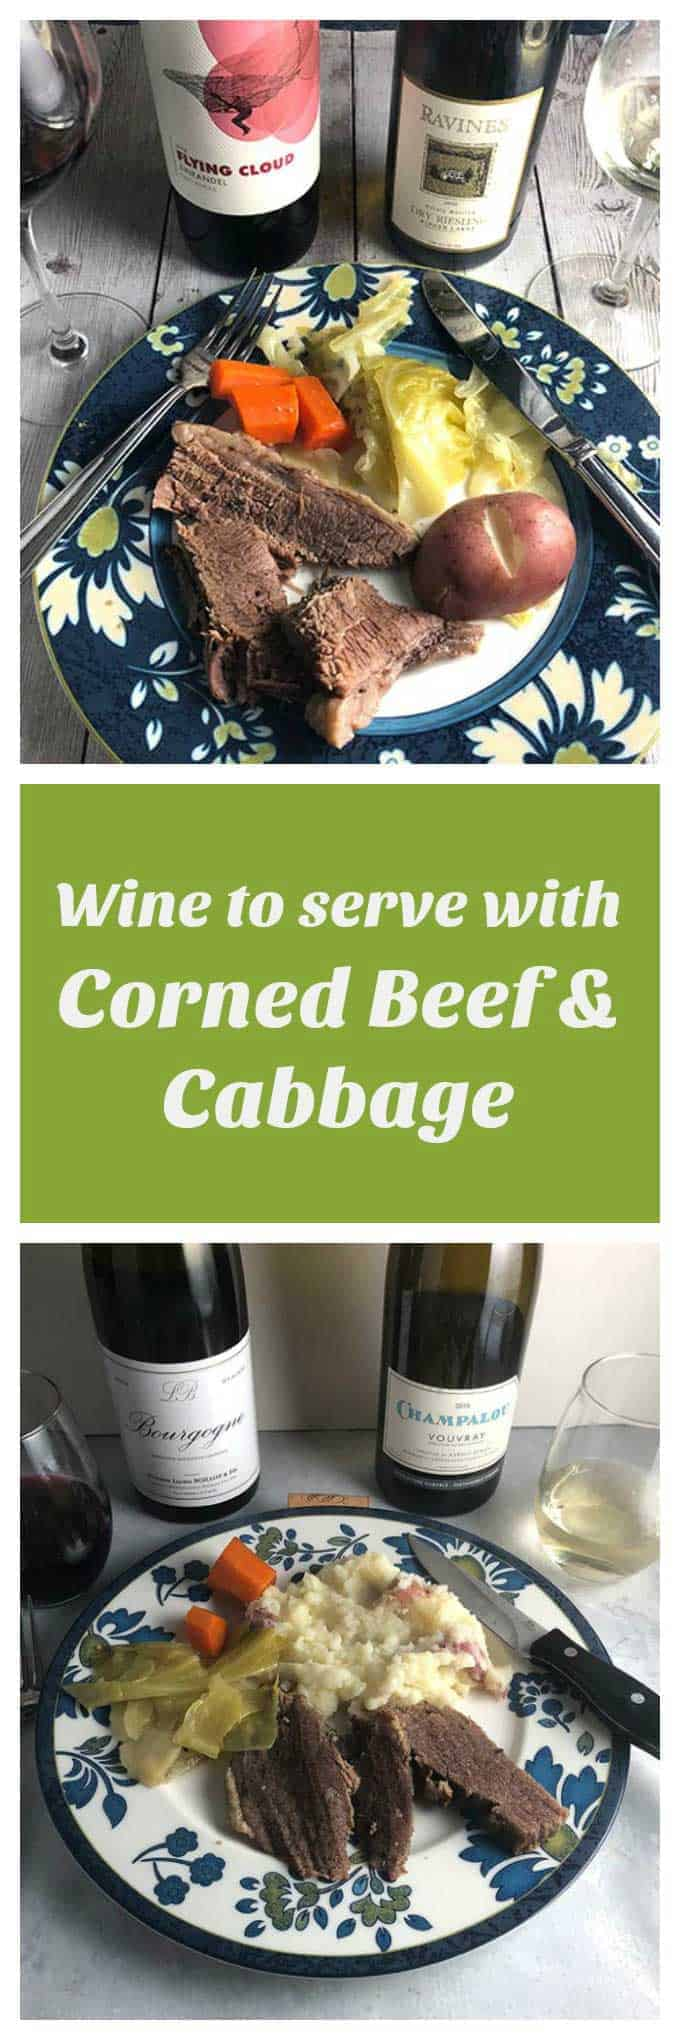 Collage with two images of wine served with corned beef and cabbage.